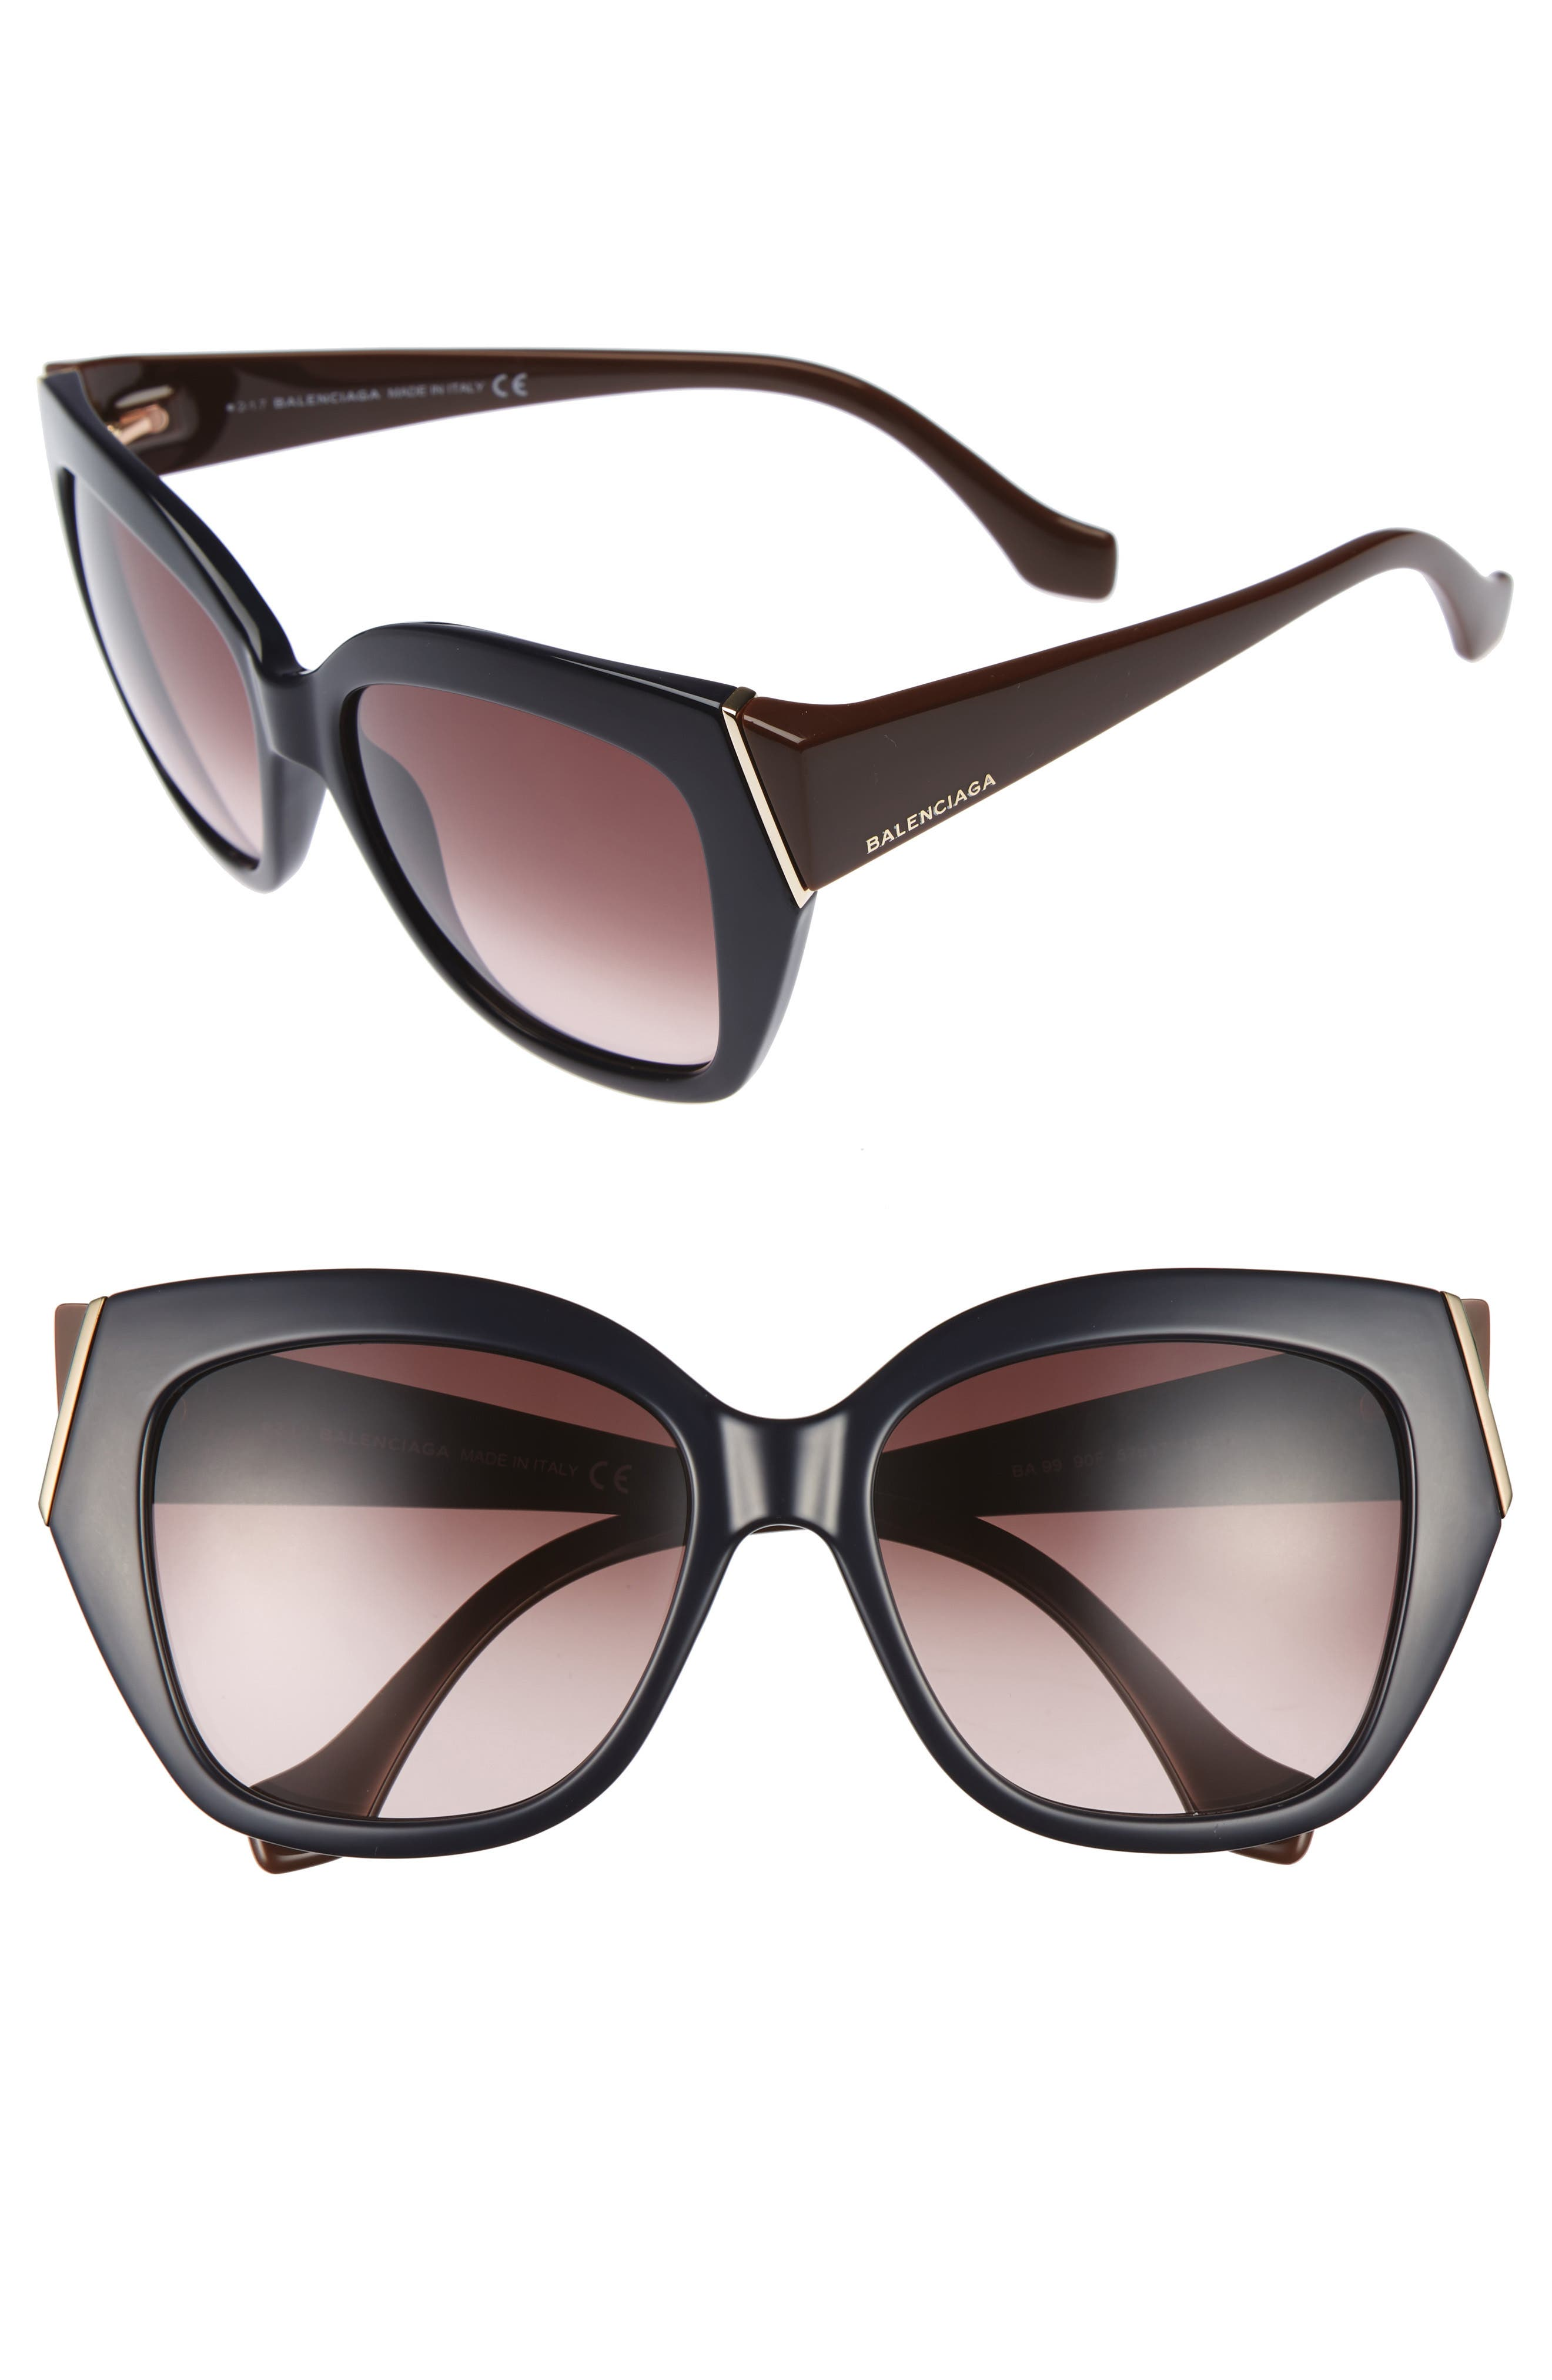 BALENCIAGA 57mm Cat Eye Sunglasses